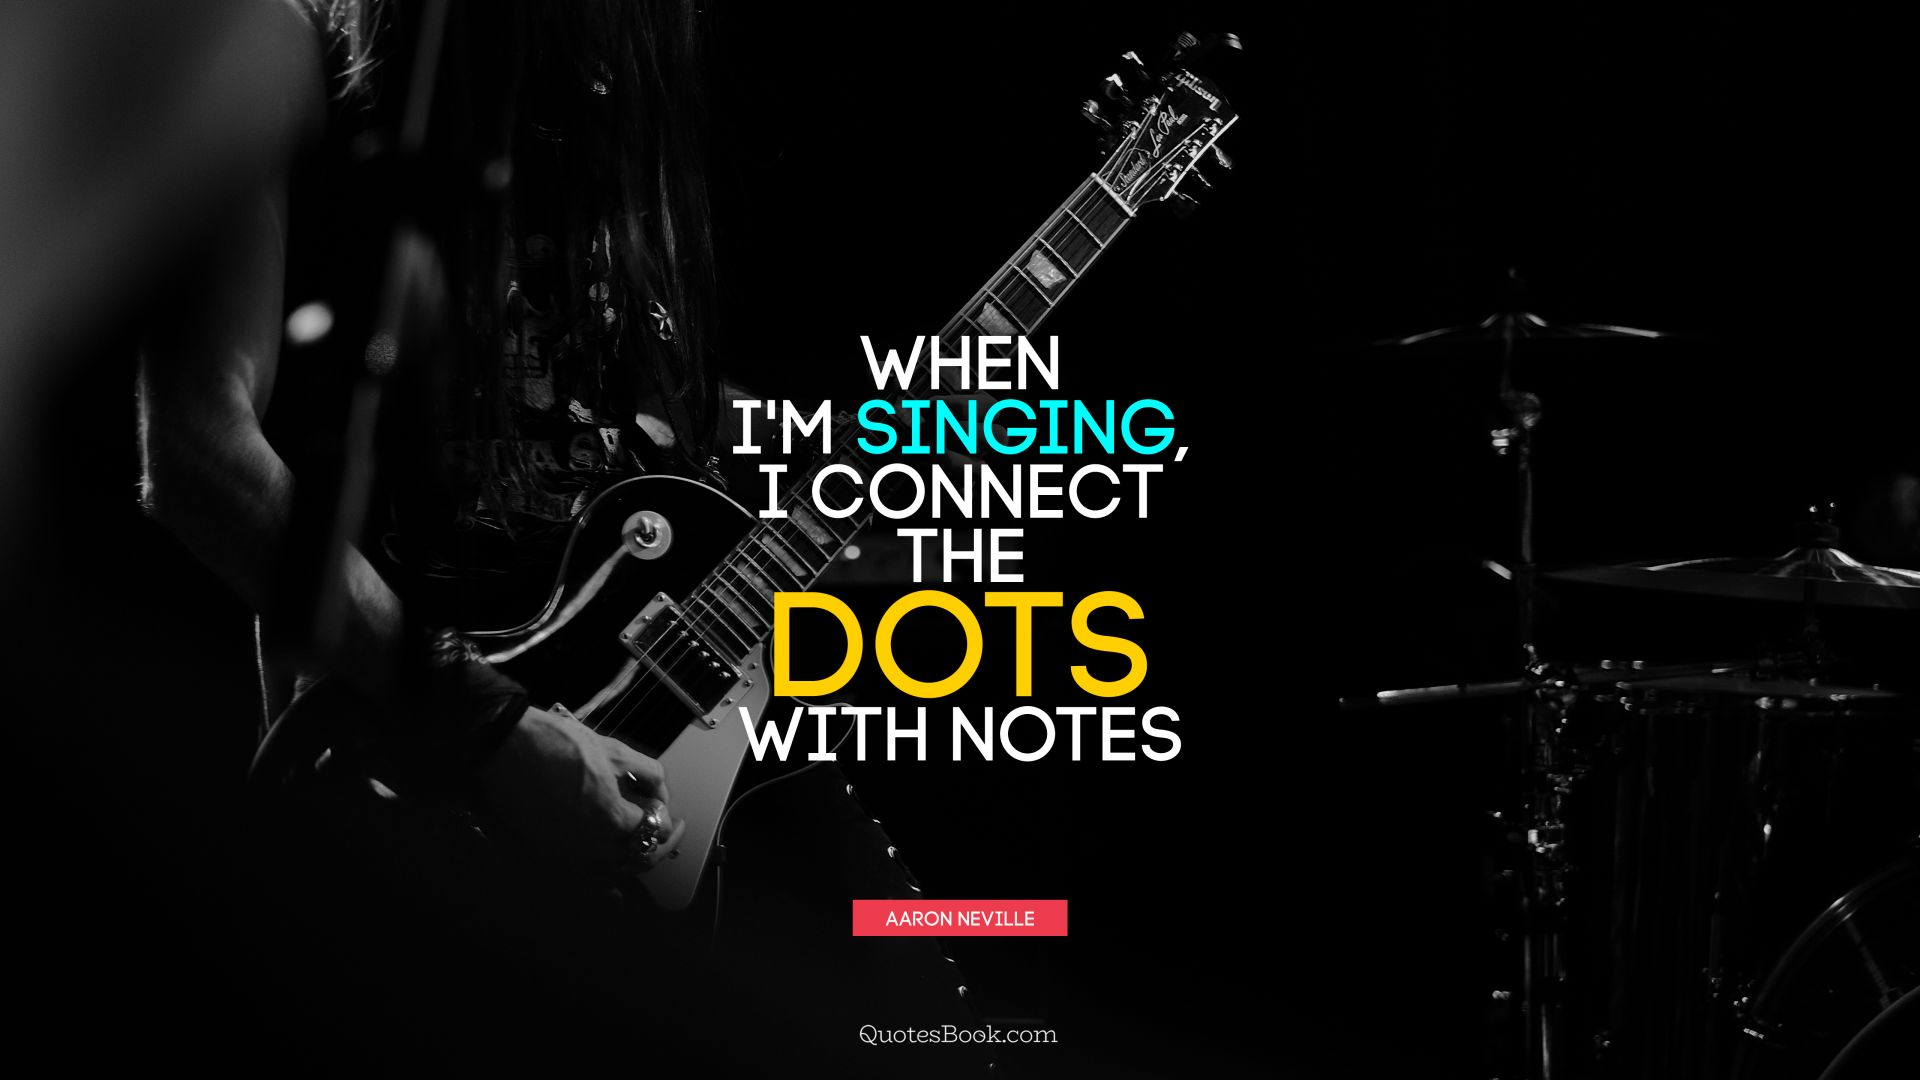 When I'm singing, I connect the dots with notes. - Quote by Aaron Neville